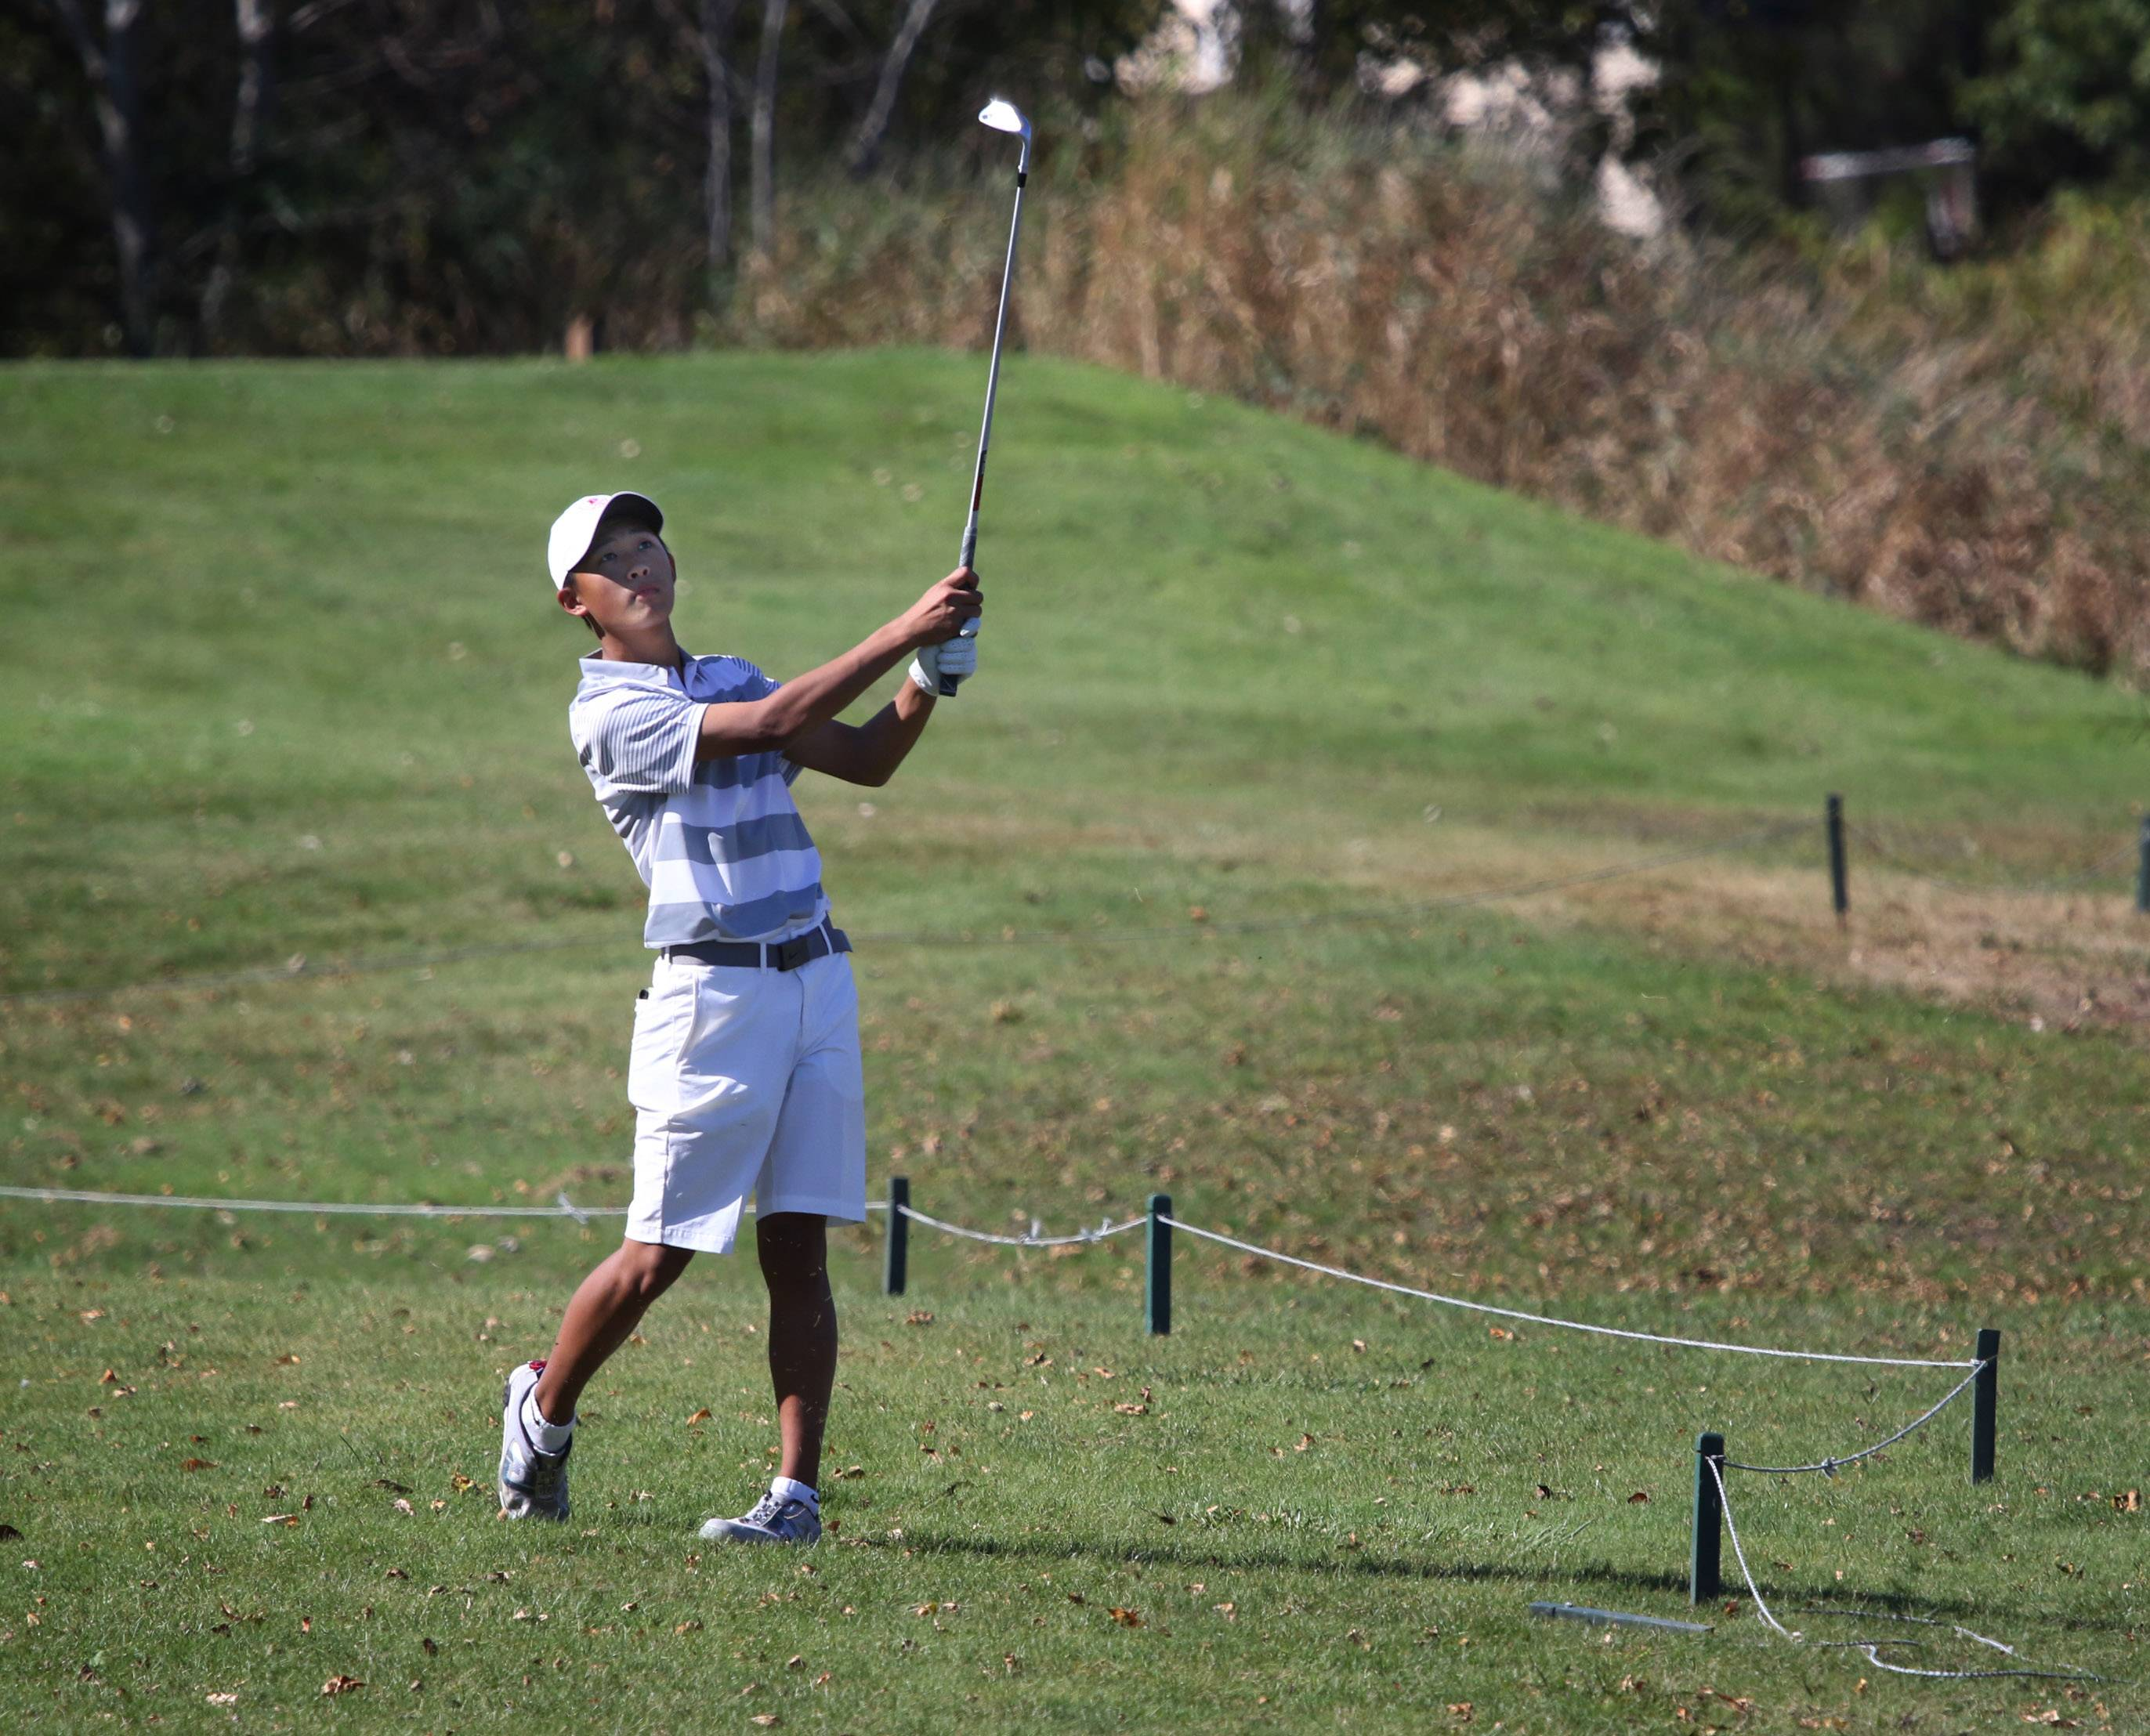 Palatine golfer Caleb Choi hits it to the green on the second hole during the Class 3A Warren boys golf sectional on Monday at Bittersweet Golf Club in Gurnee.